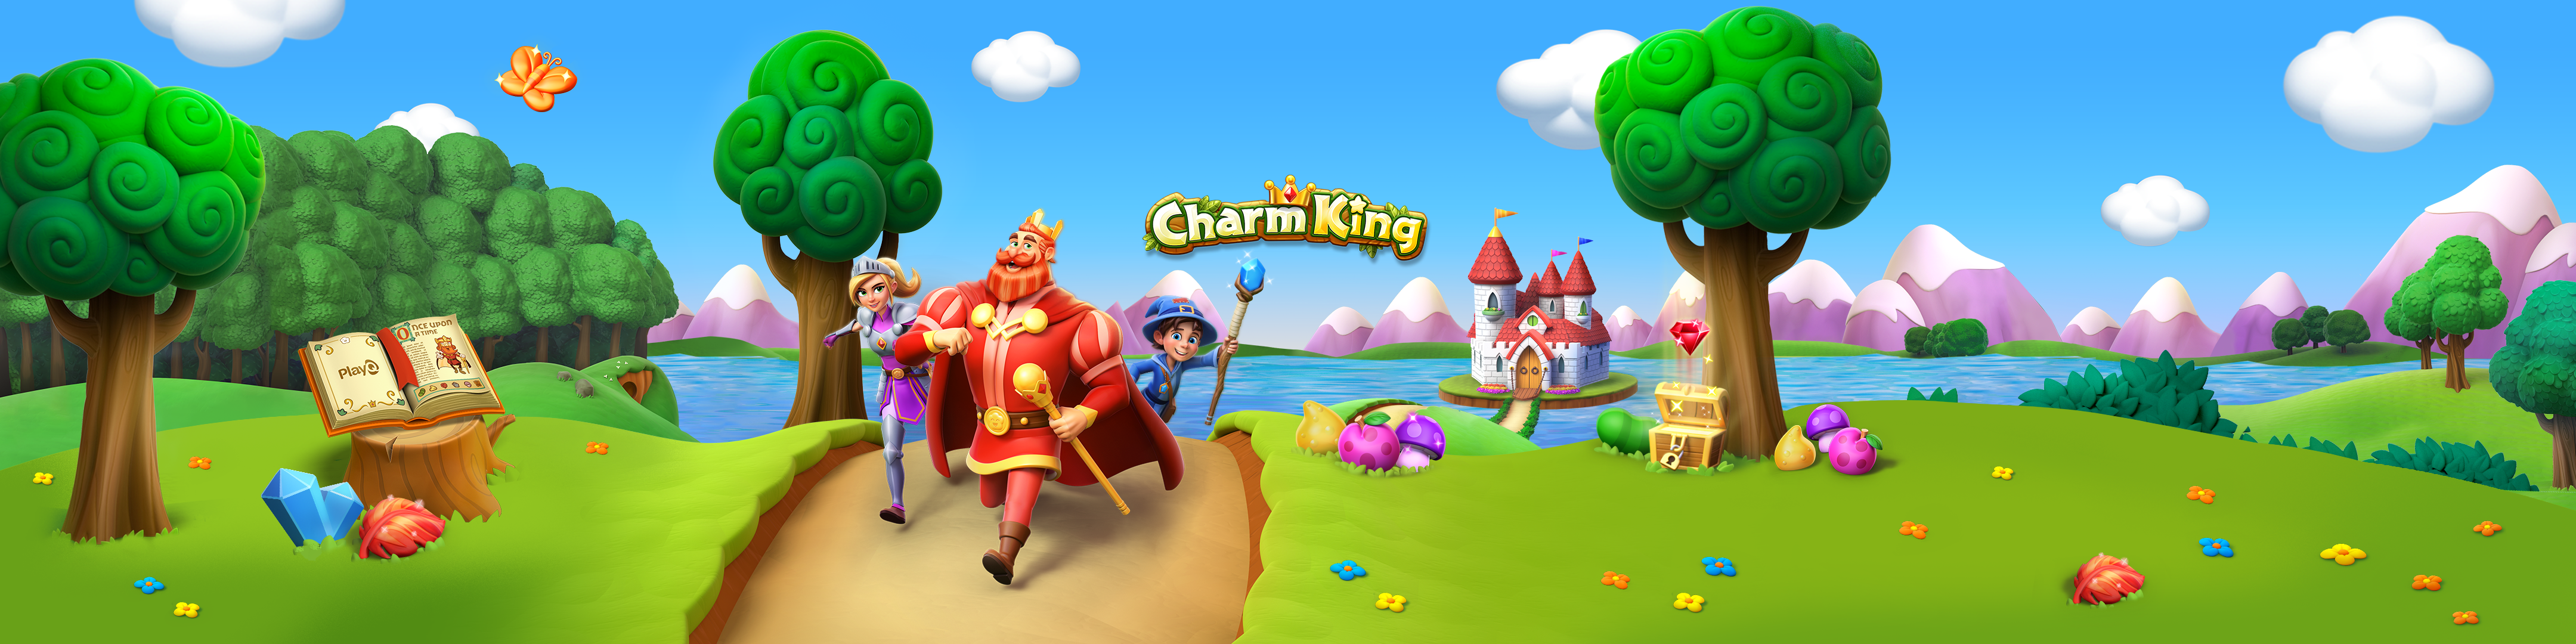 CHARM_KING_768769263_AppsGames_Product-DeveloperPage